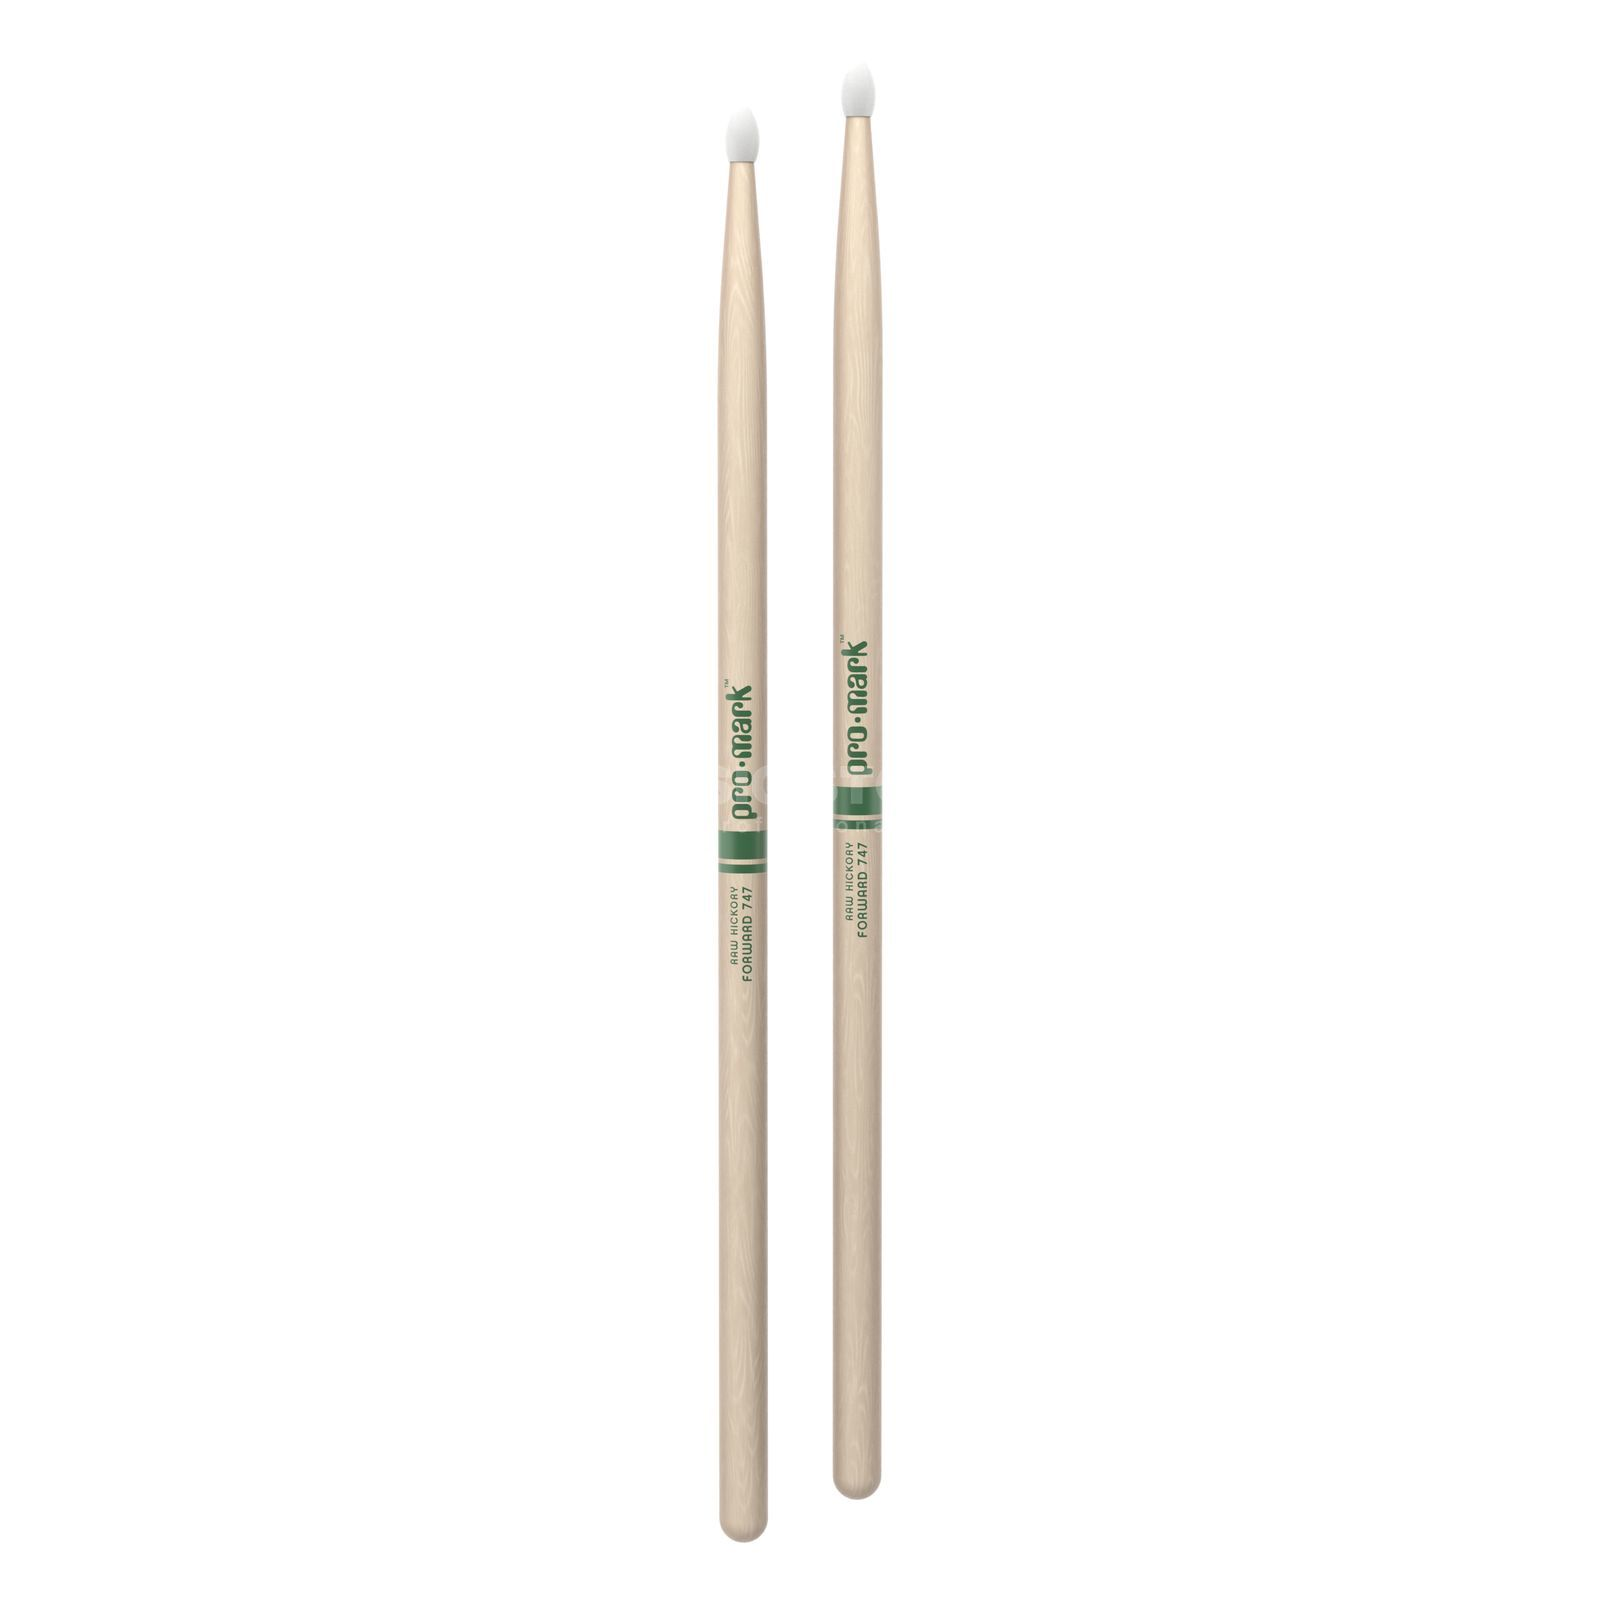 PRO-MARK TXR747N Rock Sticks Natural American Hickory, Nylon Tip Produktbillede